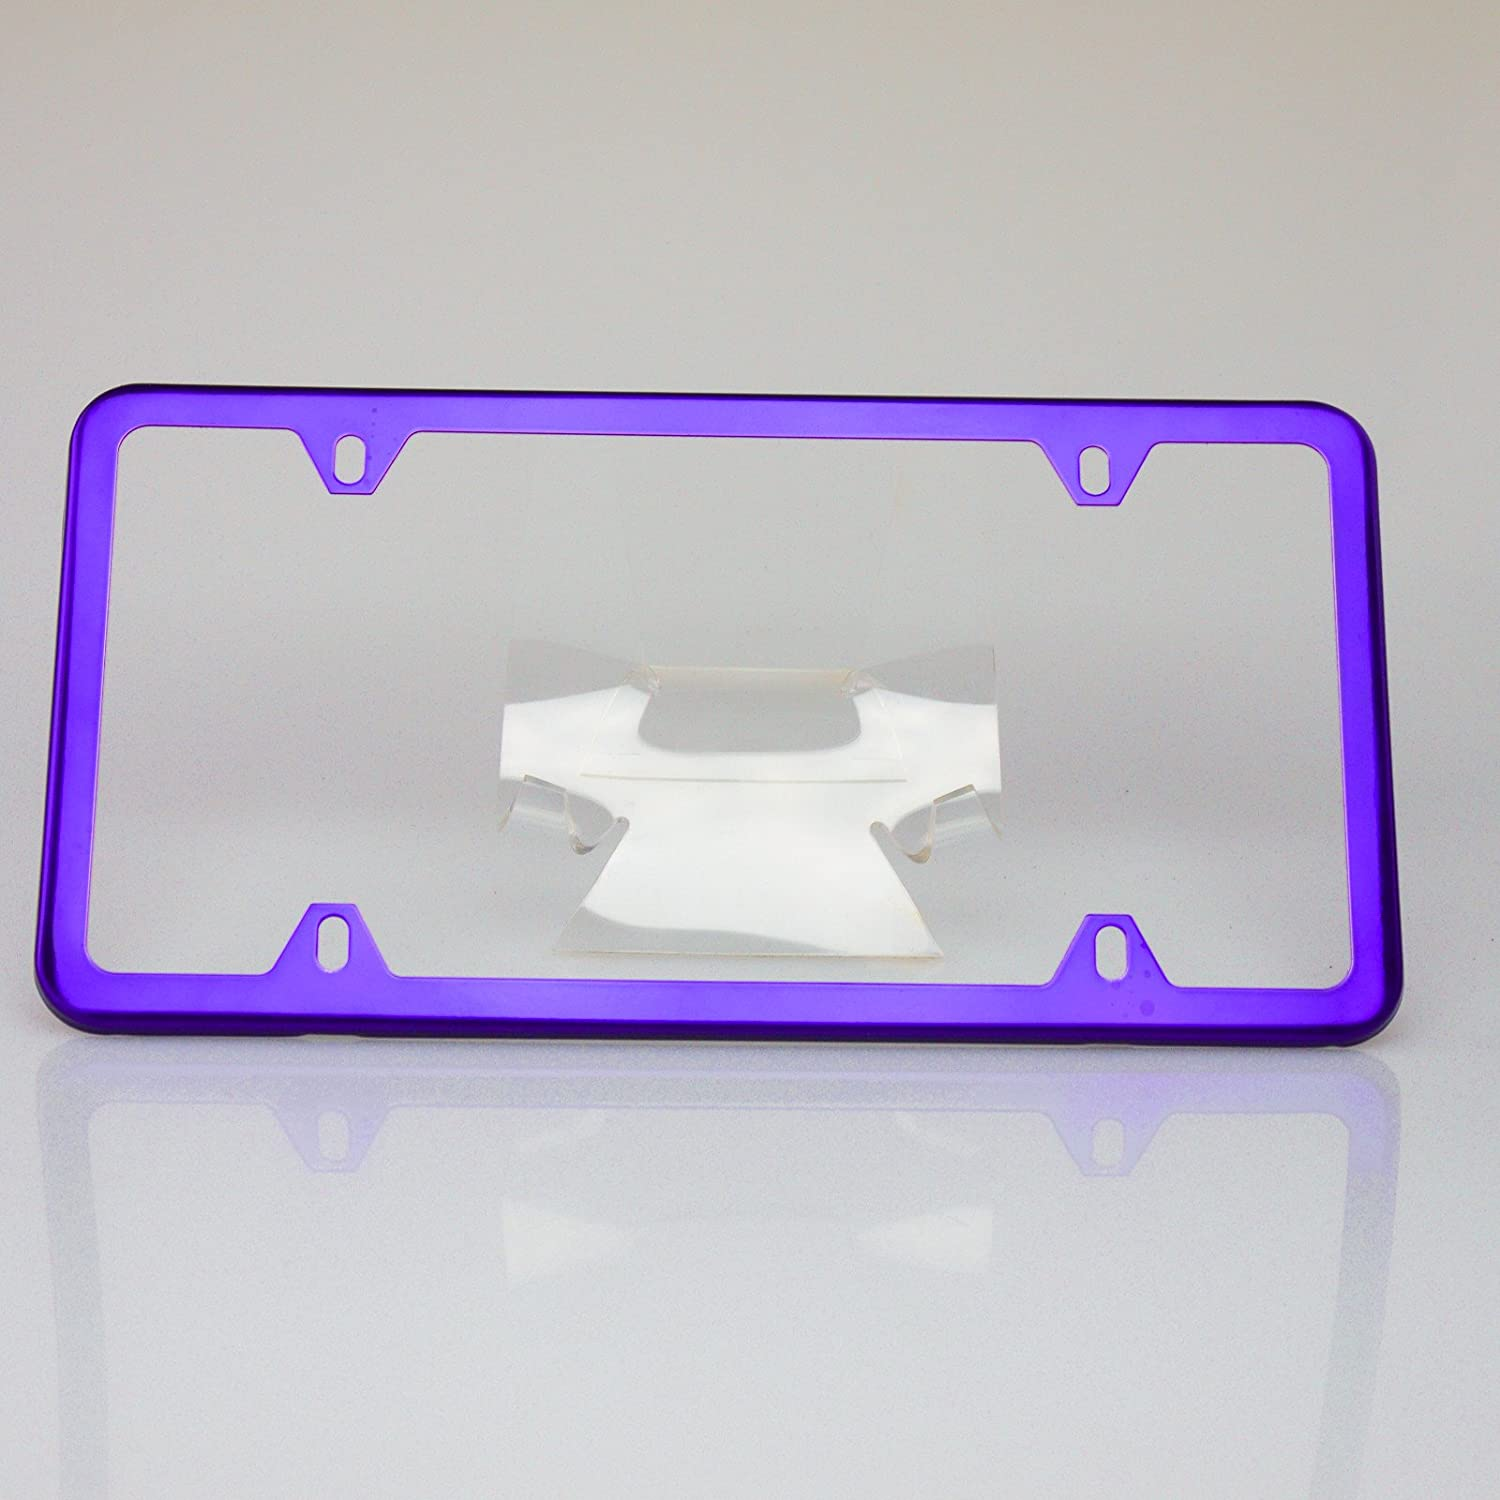 Circle Cool Matte White Powder Coated Stainless Steel License Plate Slim Four Hole Frame Holder Bracket